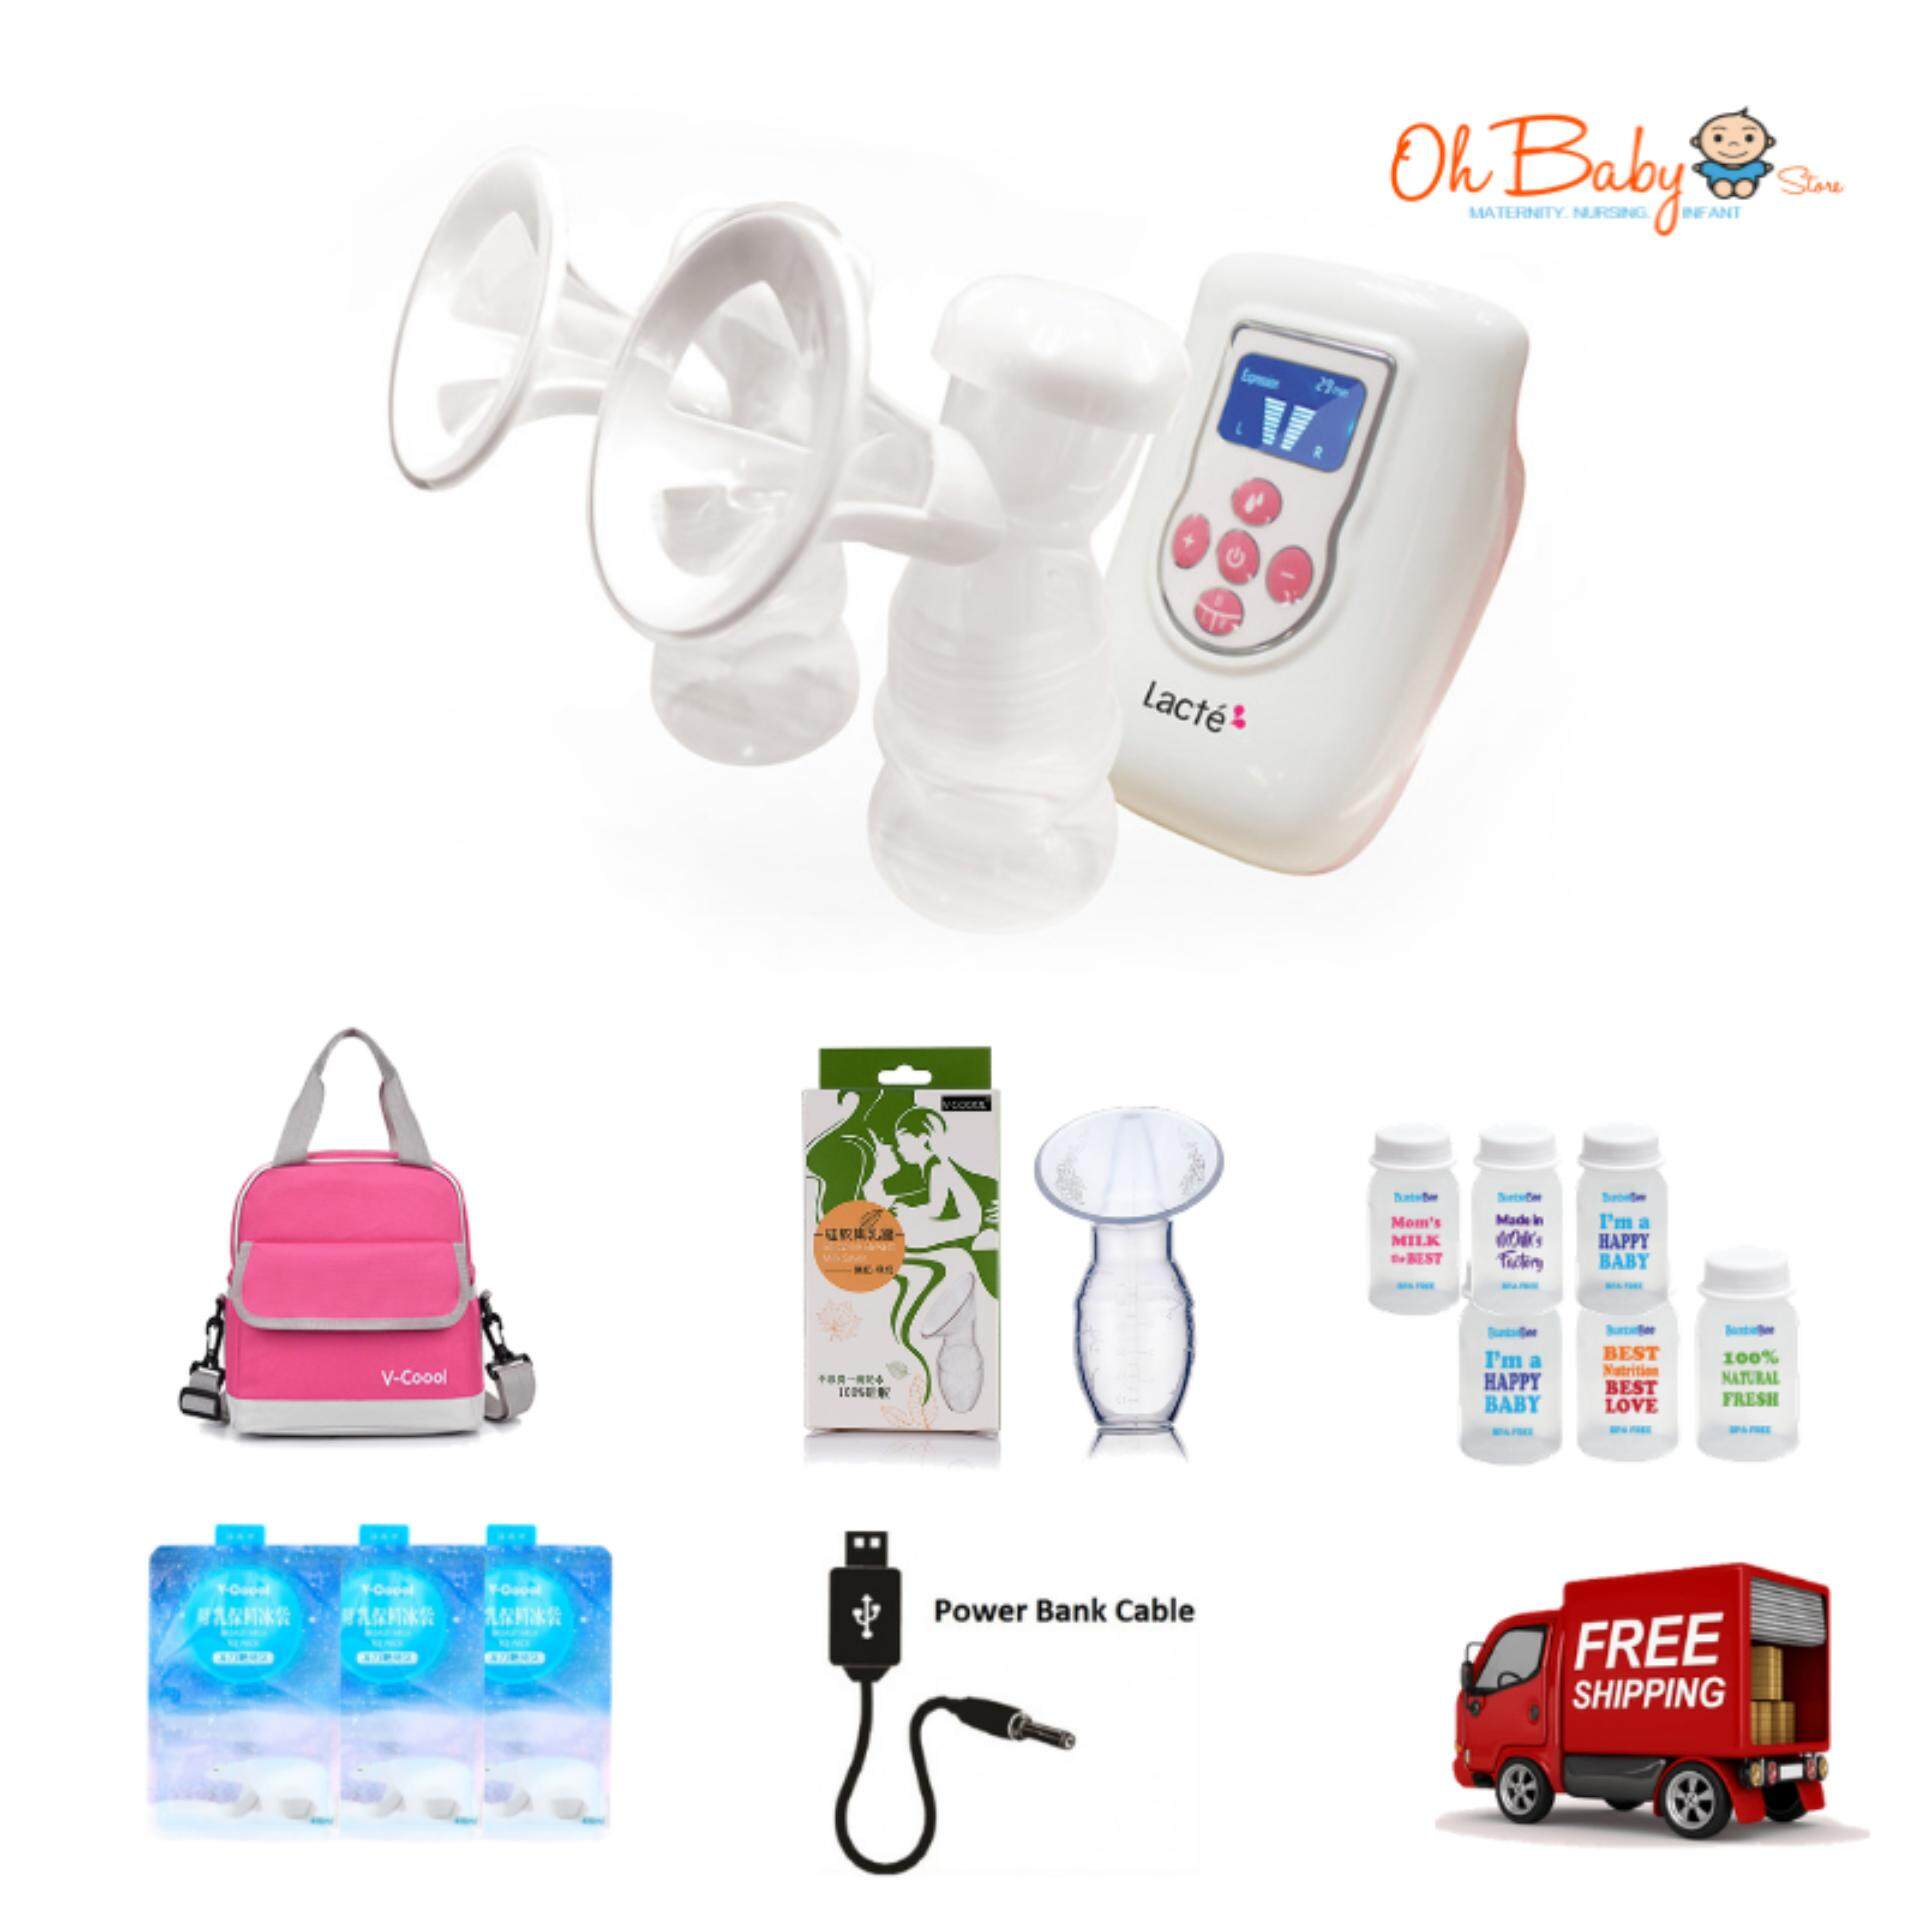 Lacte Duet Double Electric Breastpump Package By Oh Baby Store.